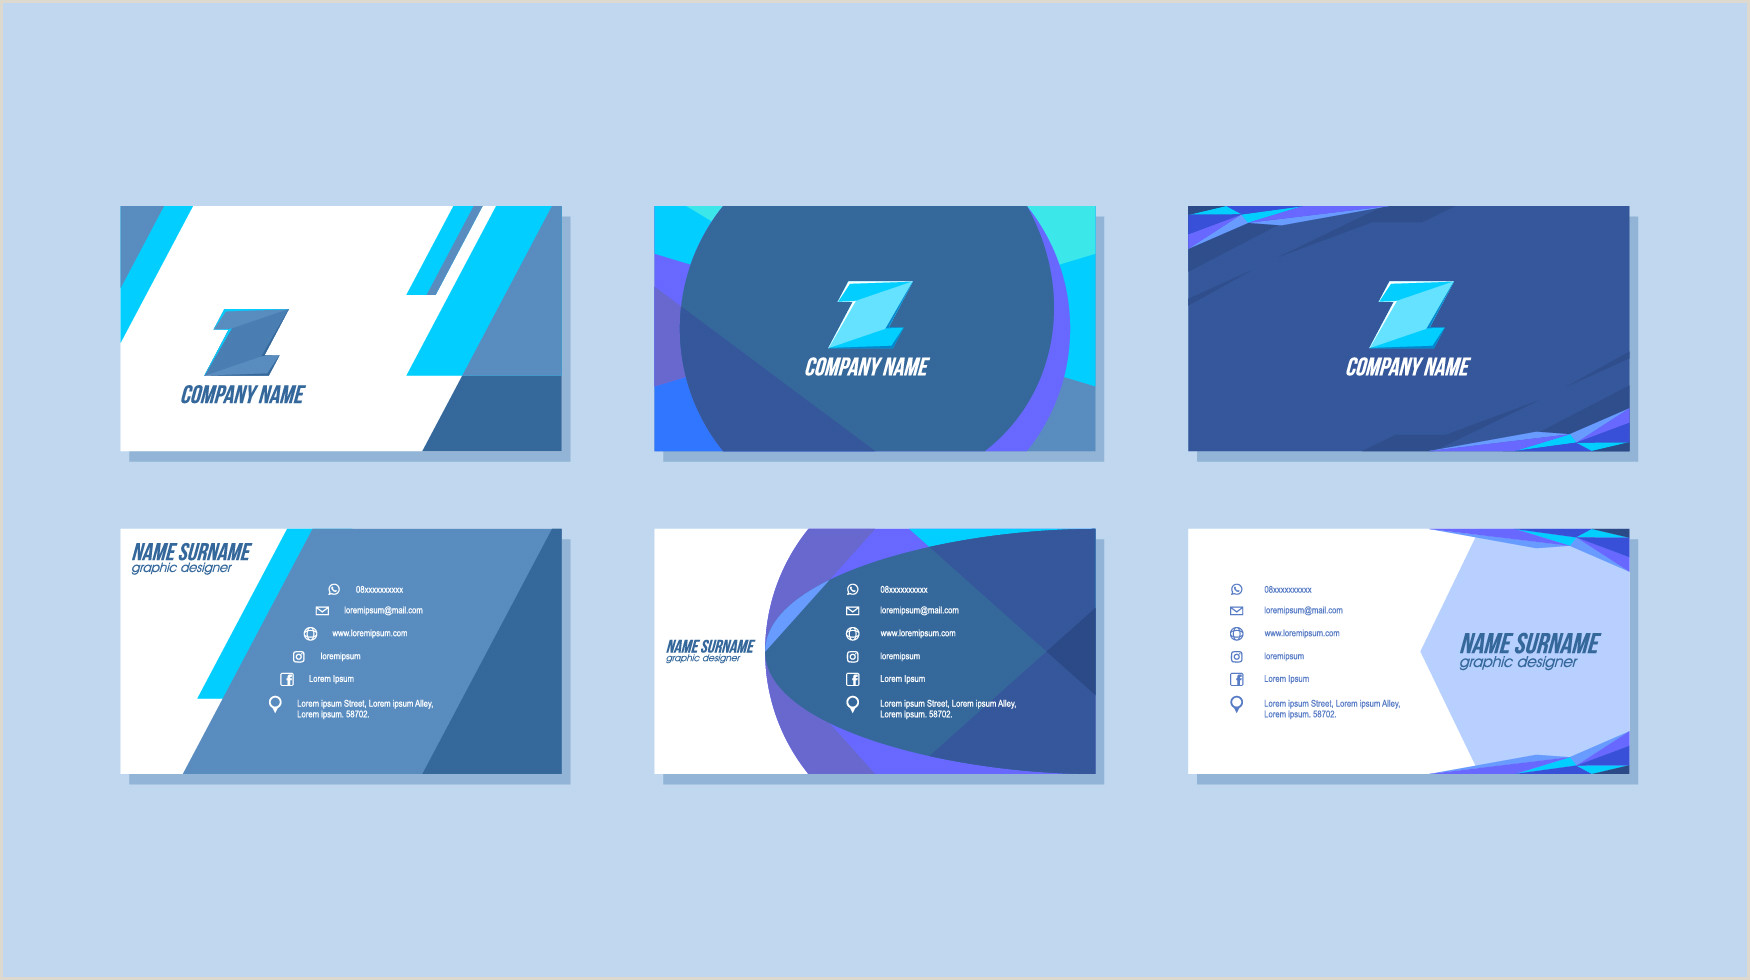 Name Card Templates Name Card Design Free Vector Art 74 909 Free Downloads